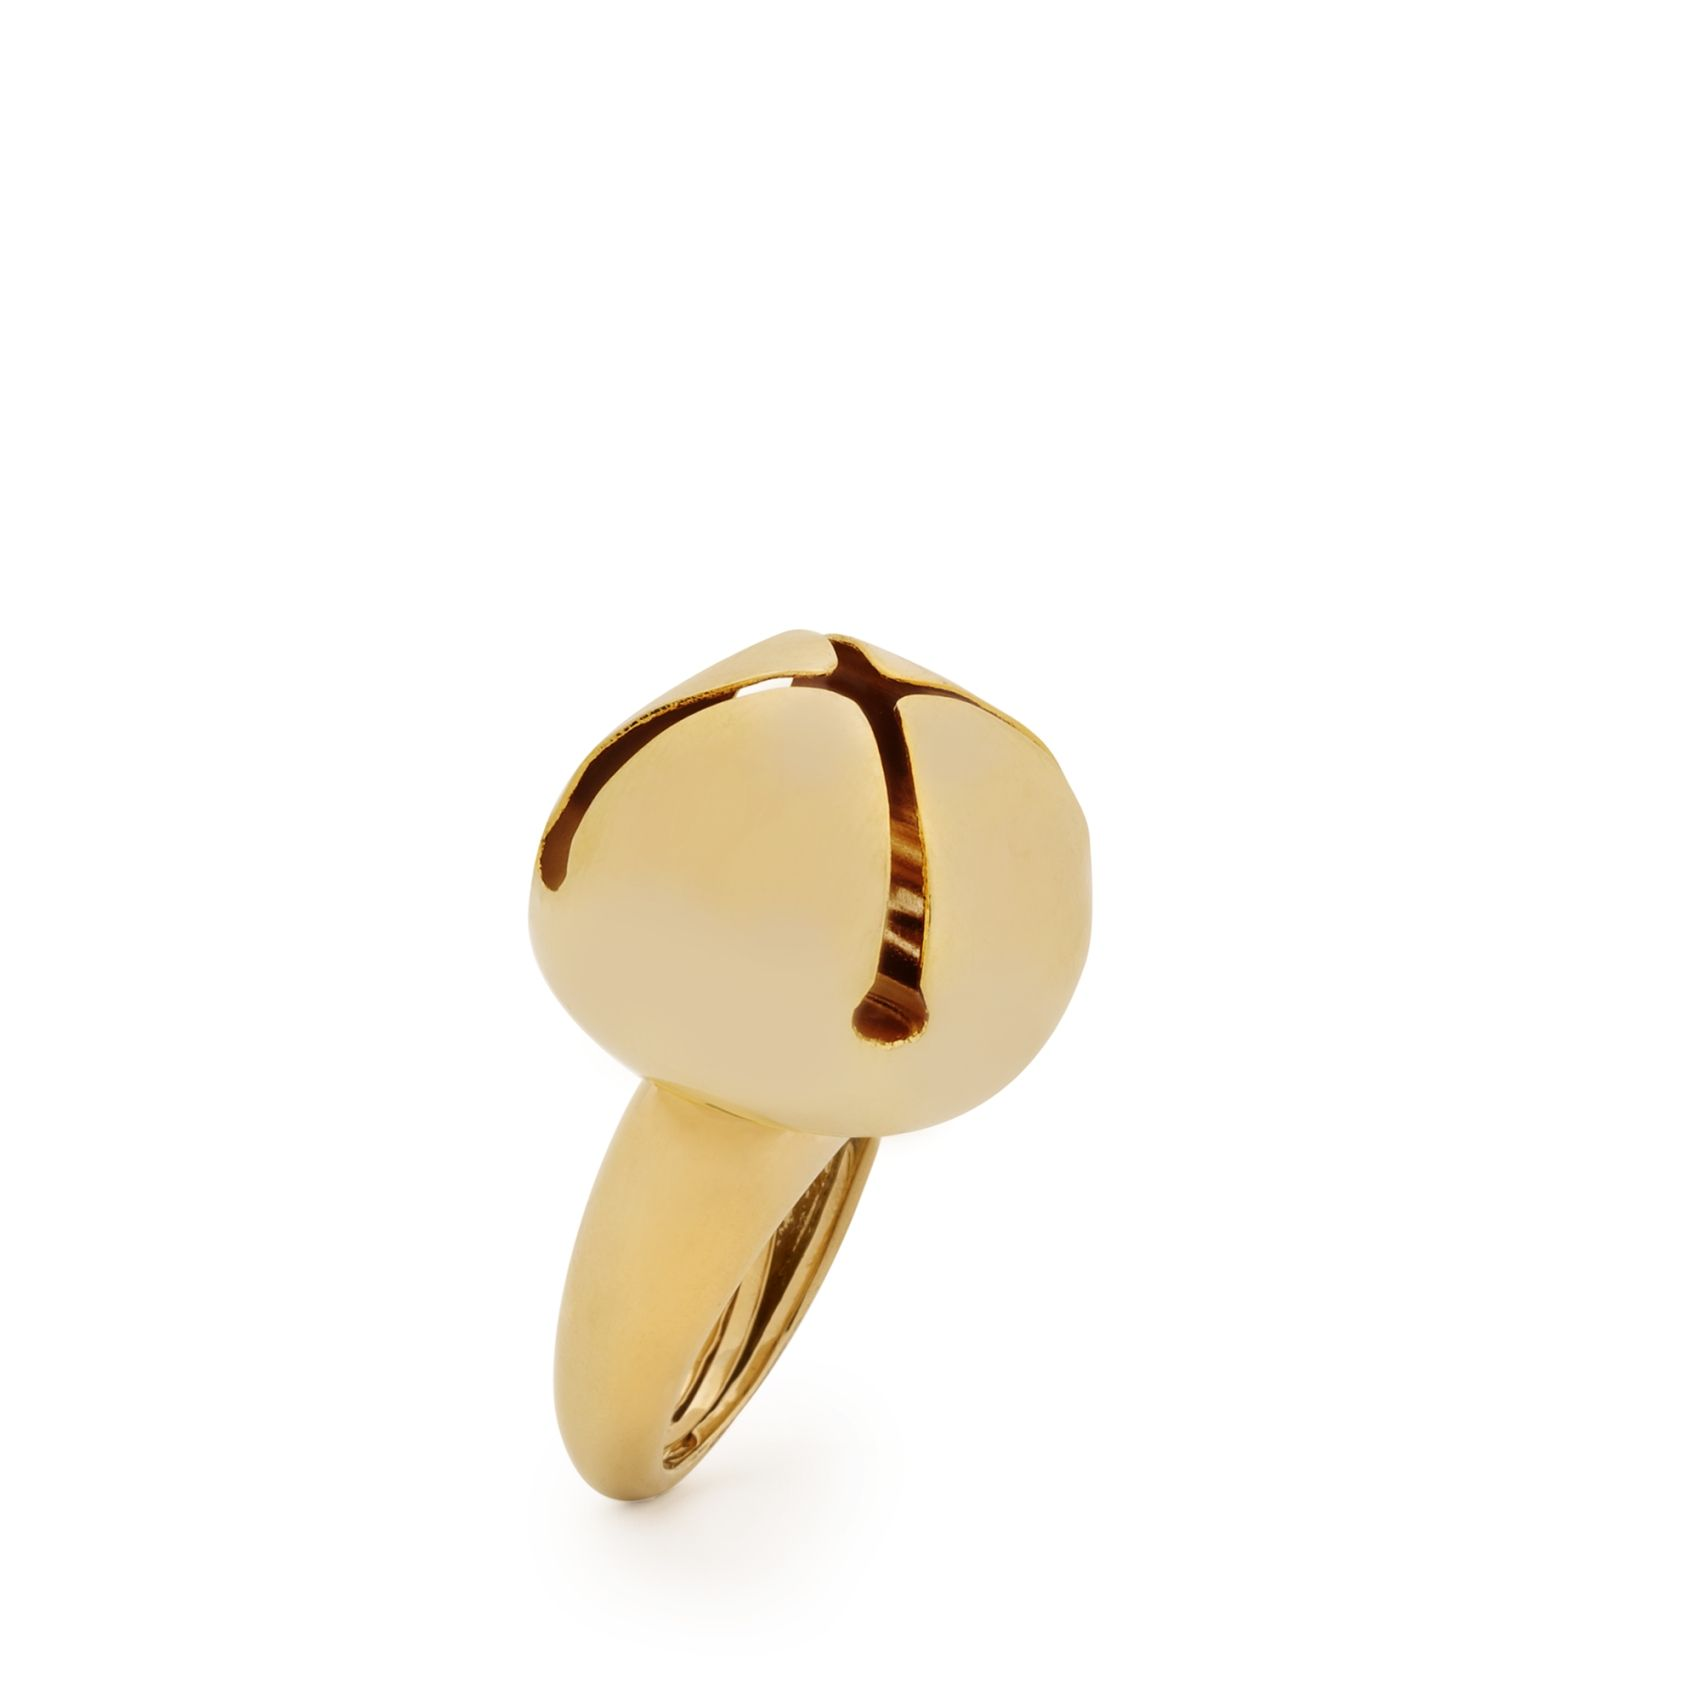 Jingle bell Ring by Kate Spade